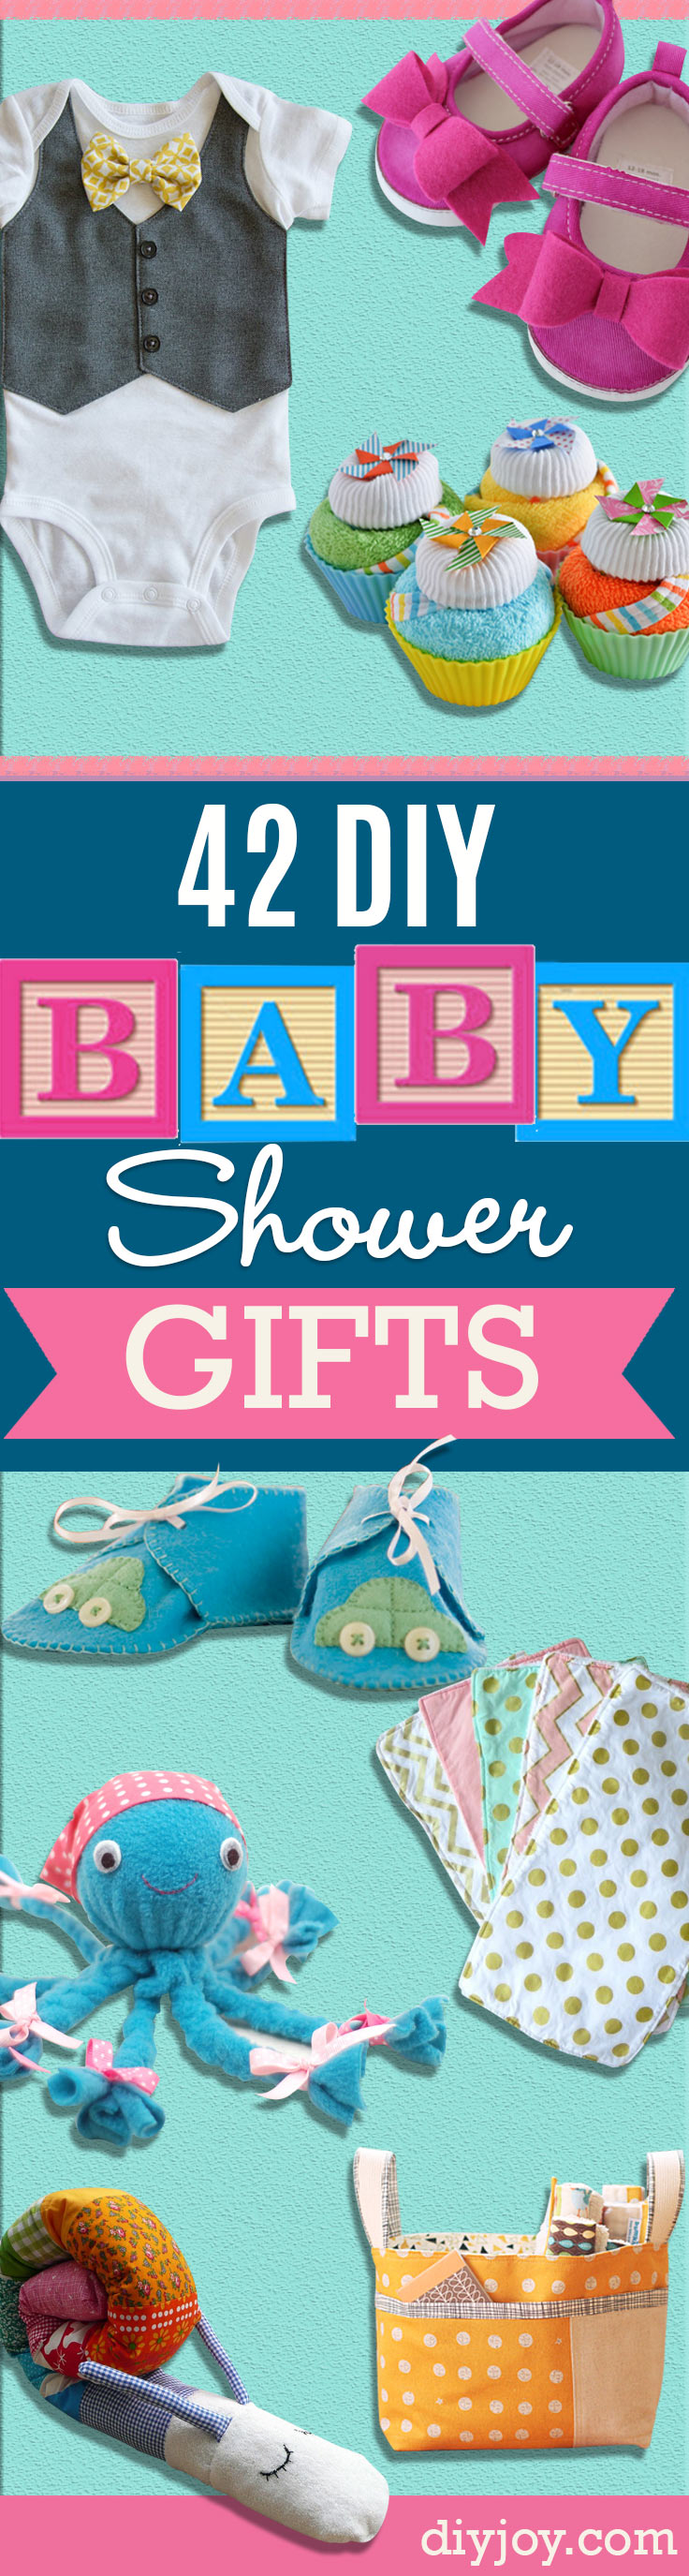 42 fabulous diy baby shower gifts best diy baby shower gifts homemade baby shower presents and creative cheap gift ideas solutioingenieria Gallery